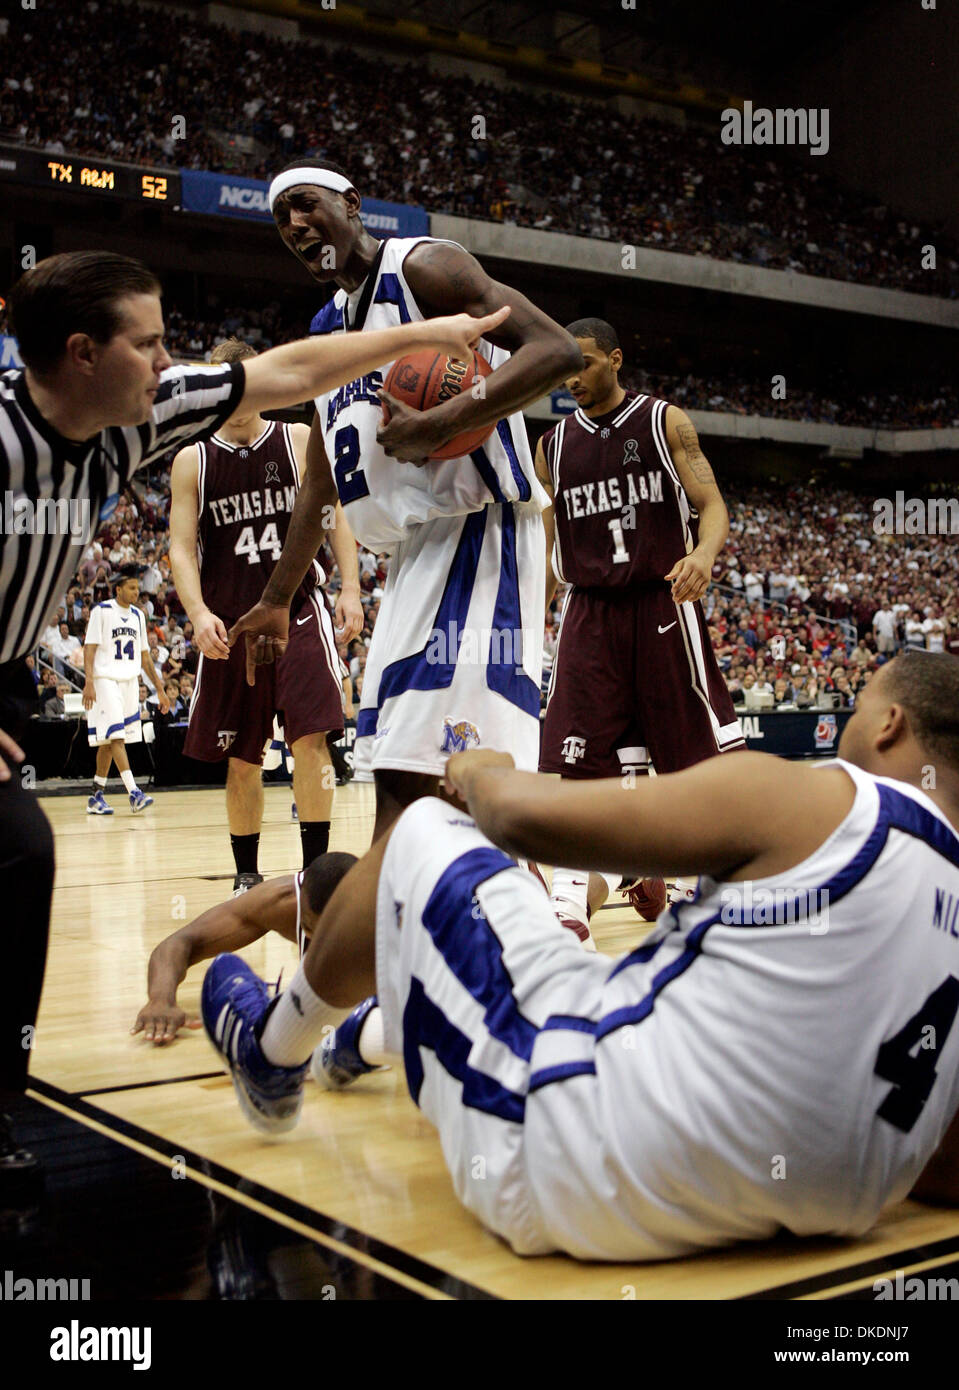 Mar 22, 2007 - San Antonio, TX, USA - To the dismay of Memphi ROBERT DOZIER (2) the referee indicts ball possession to the Aggies. Involved in the play are Memphis PIERRE NILES (4) and Aggies ANTANAS KAVALIAUSKAS (44) and Acie law IV (1) during second half action NCAA South Regional semifinal game at the Alamodome Thursday March 22, 2007.  (Credit Image: © William Luther/San Antoni - Stock Image